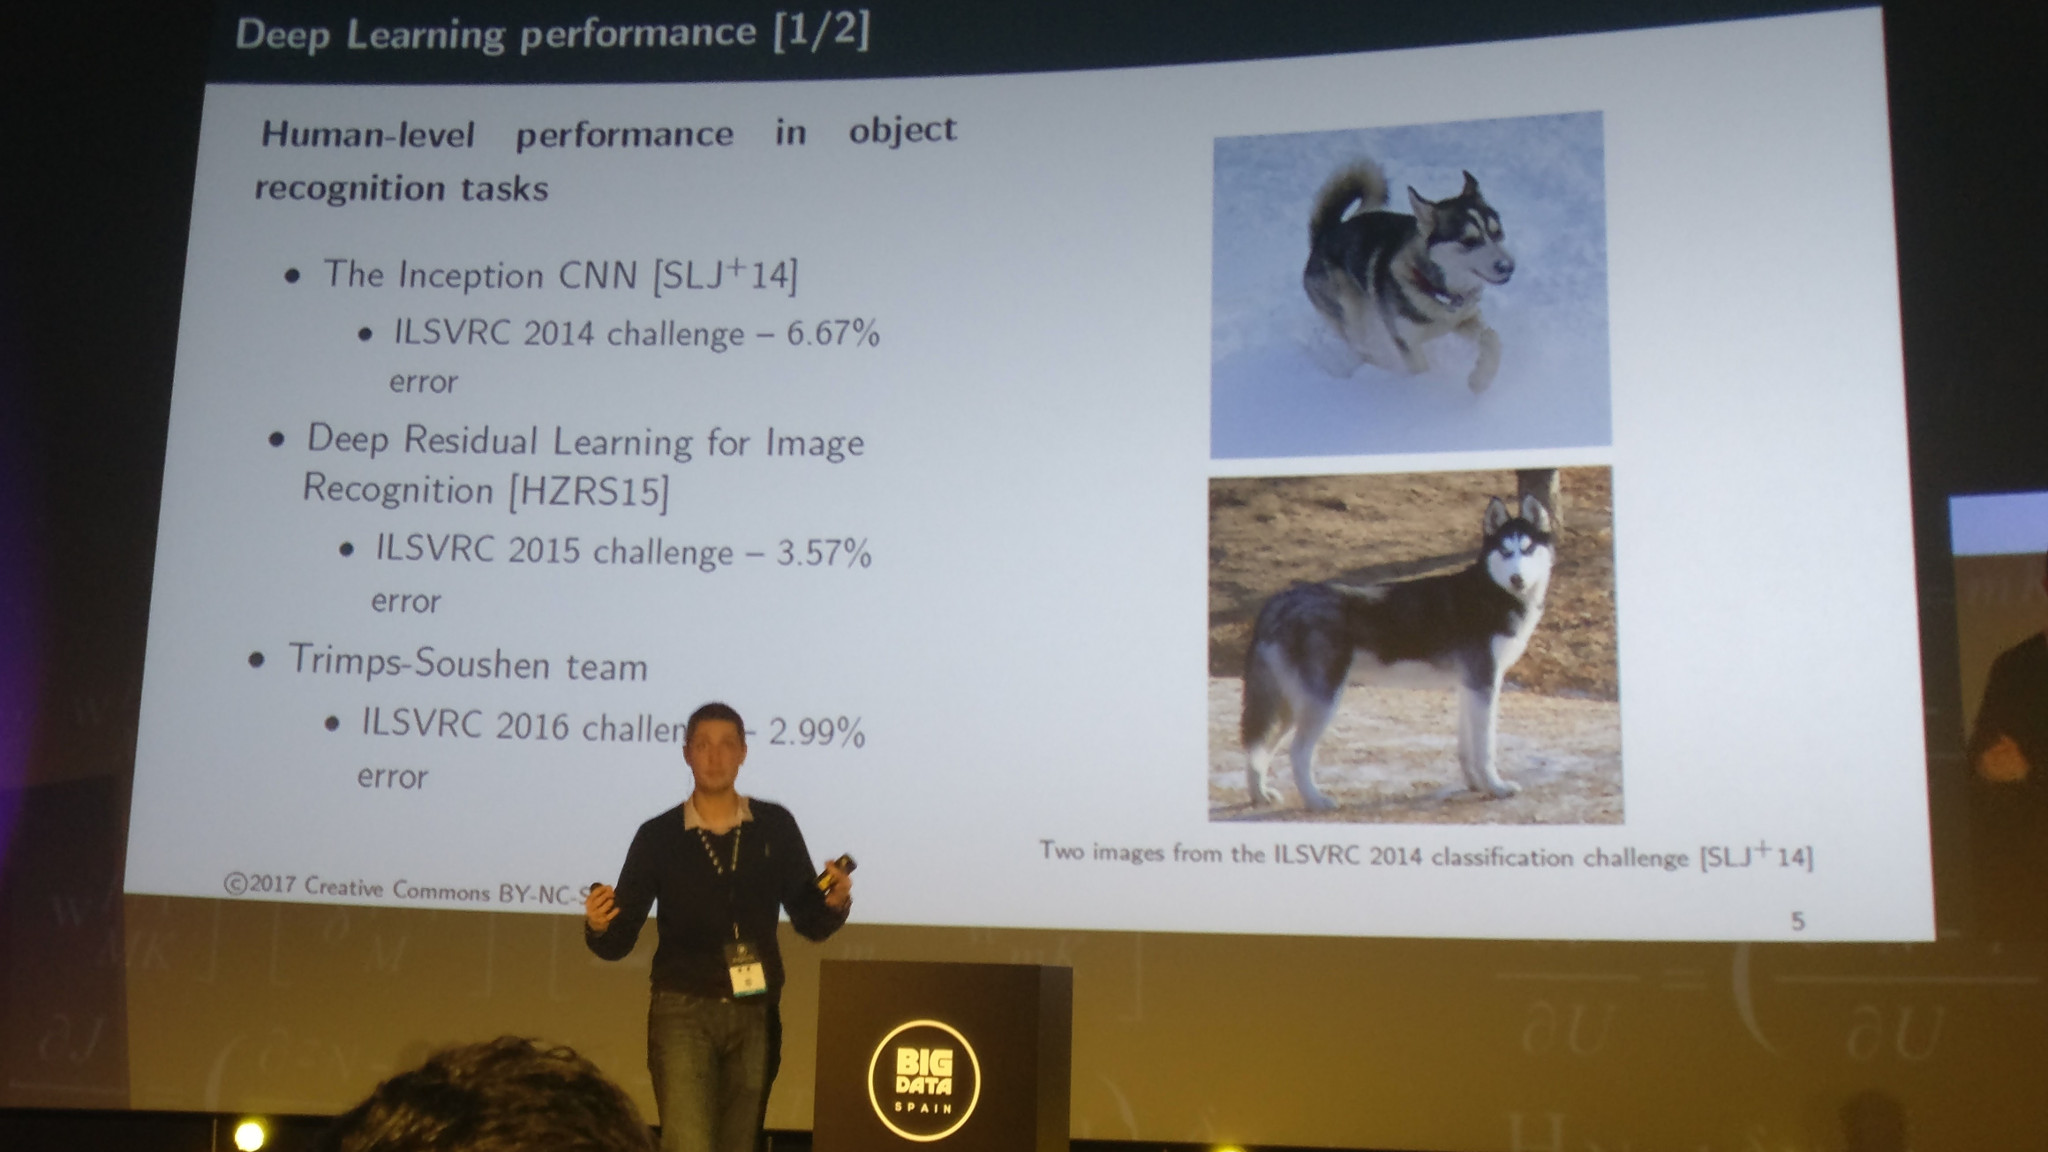 Nikolay Manchev - Deep Learning performance vs human-level performance in object recognition tasks